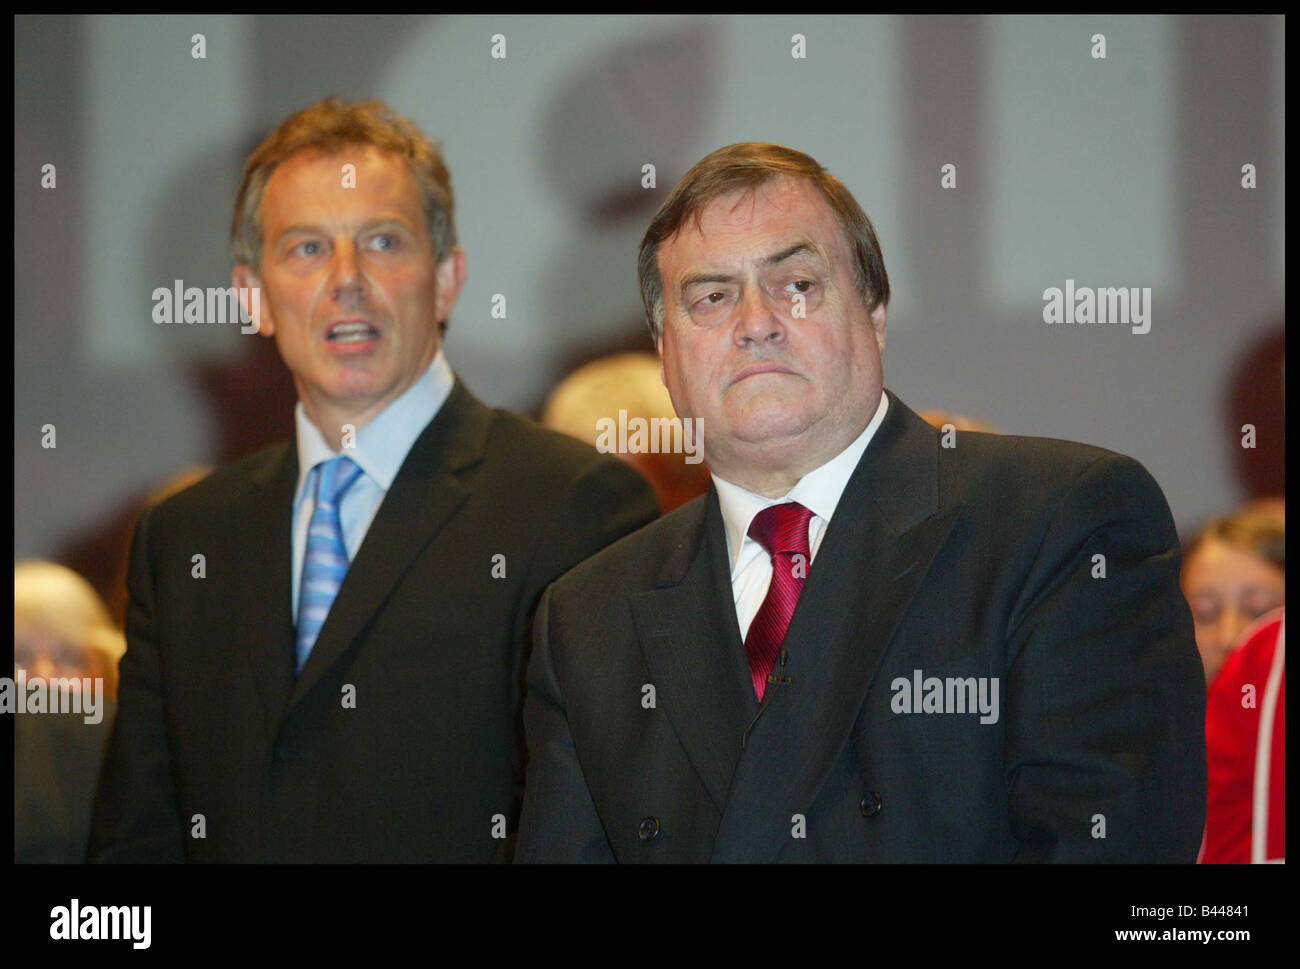 Tony Blair and John Prescott on stage at the end of the Labour Party Conference in Bournemouth October 2003 - Stock Image